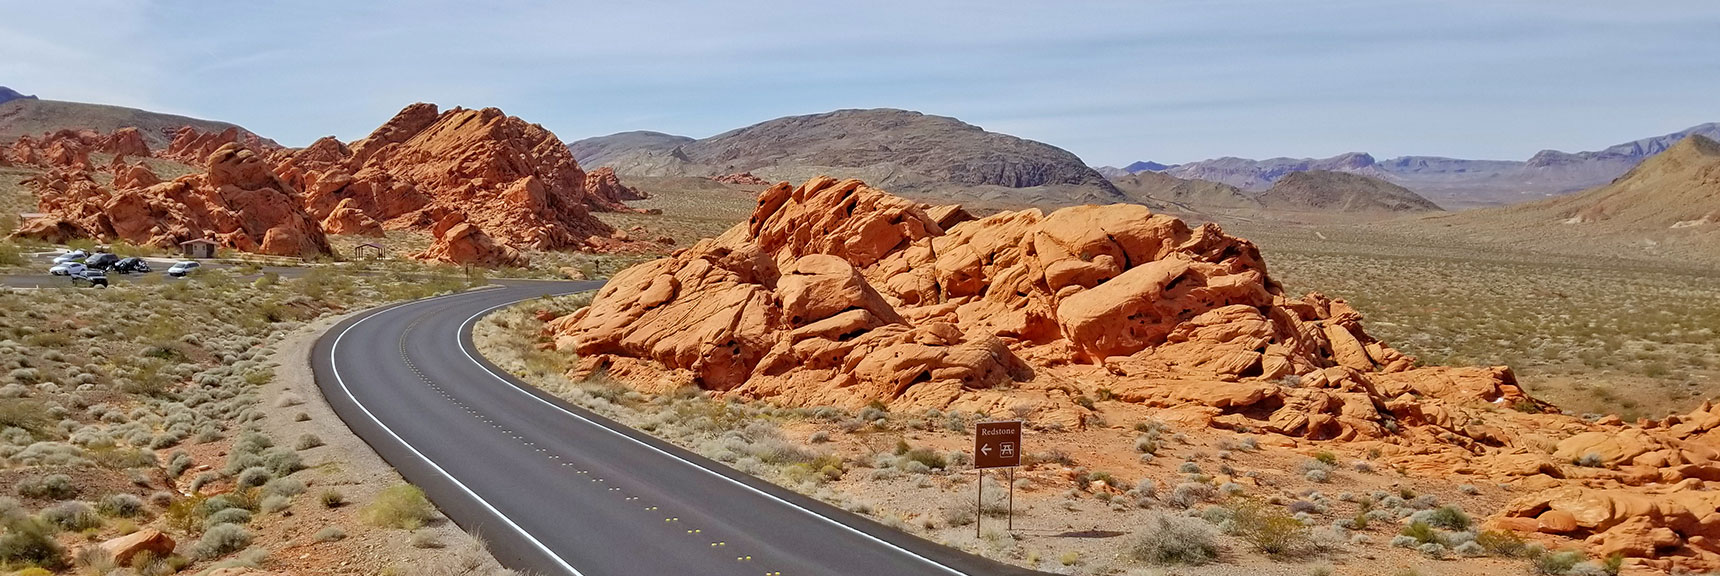 Redstone Dune Area On Northshore Road in Lake Mead National Park, Nevada